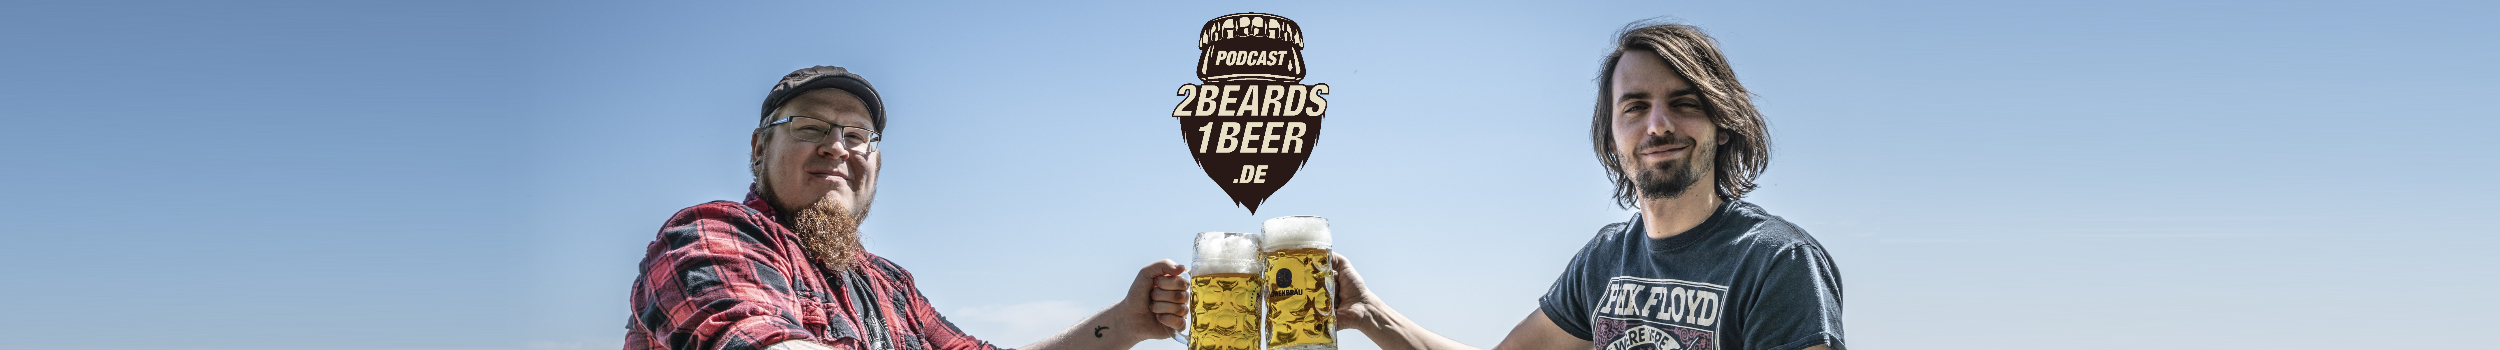 2 Beards 1 Beer - Merch-Shop